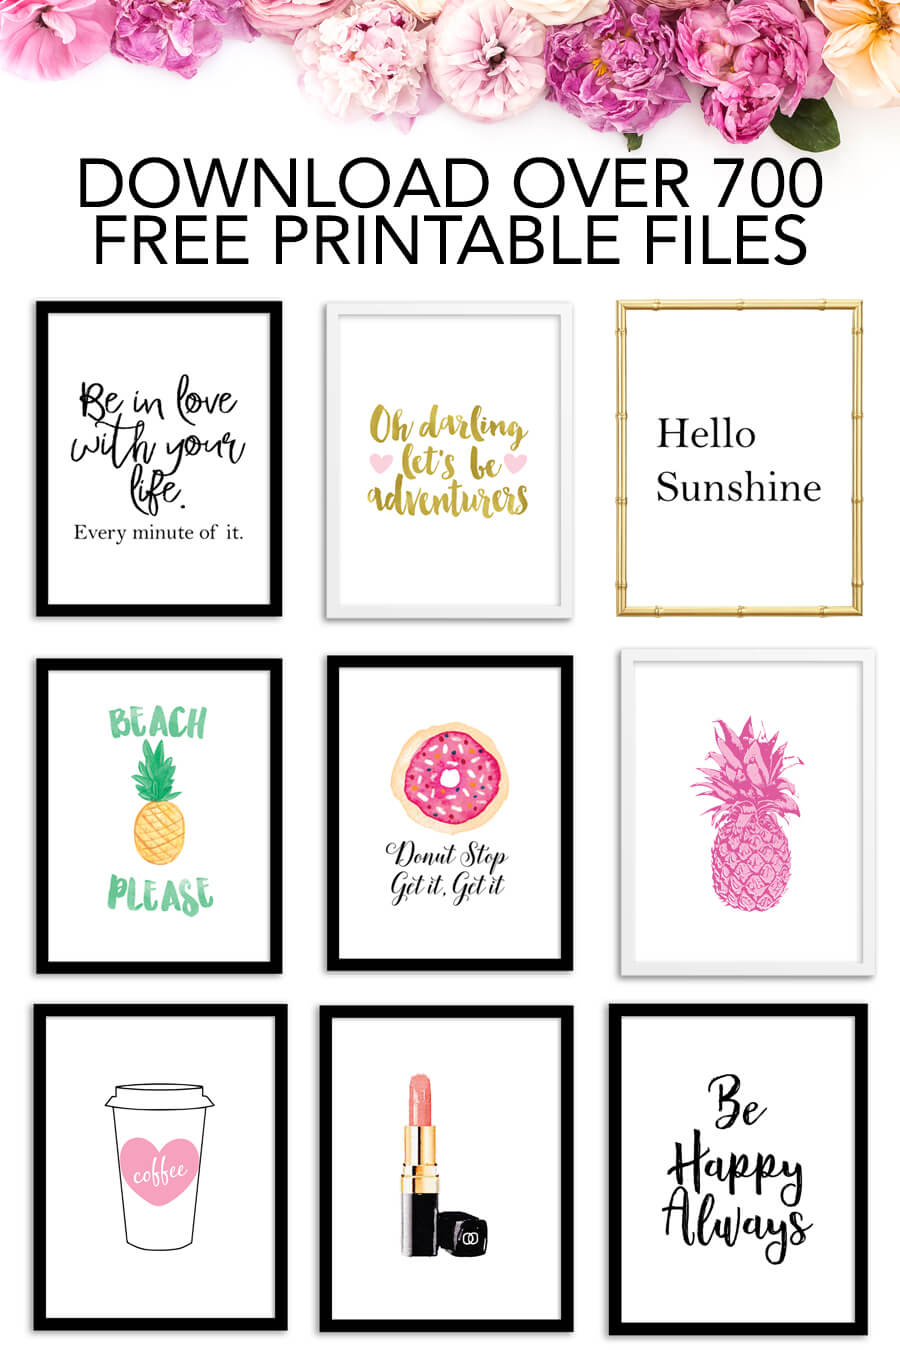 Free Printables - Download Over 700 Free Printable Files! - Chicfetti - Free Printable Images